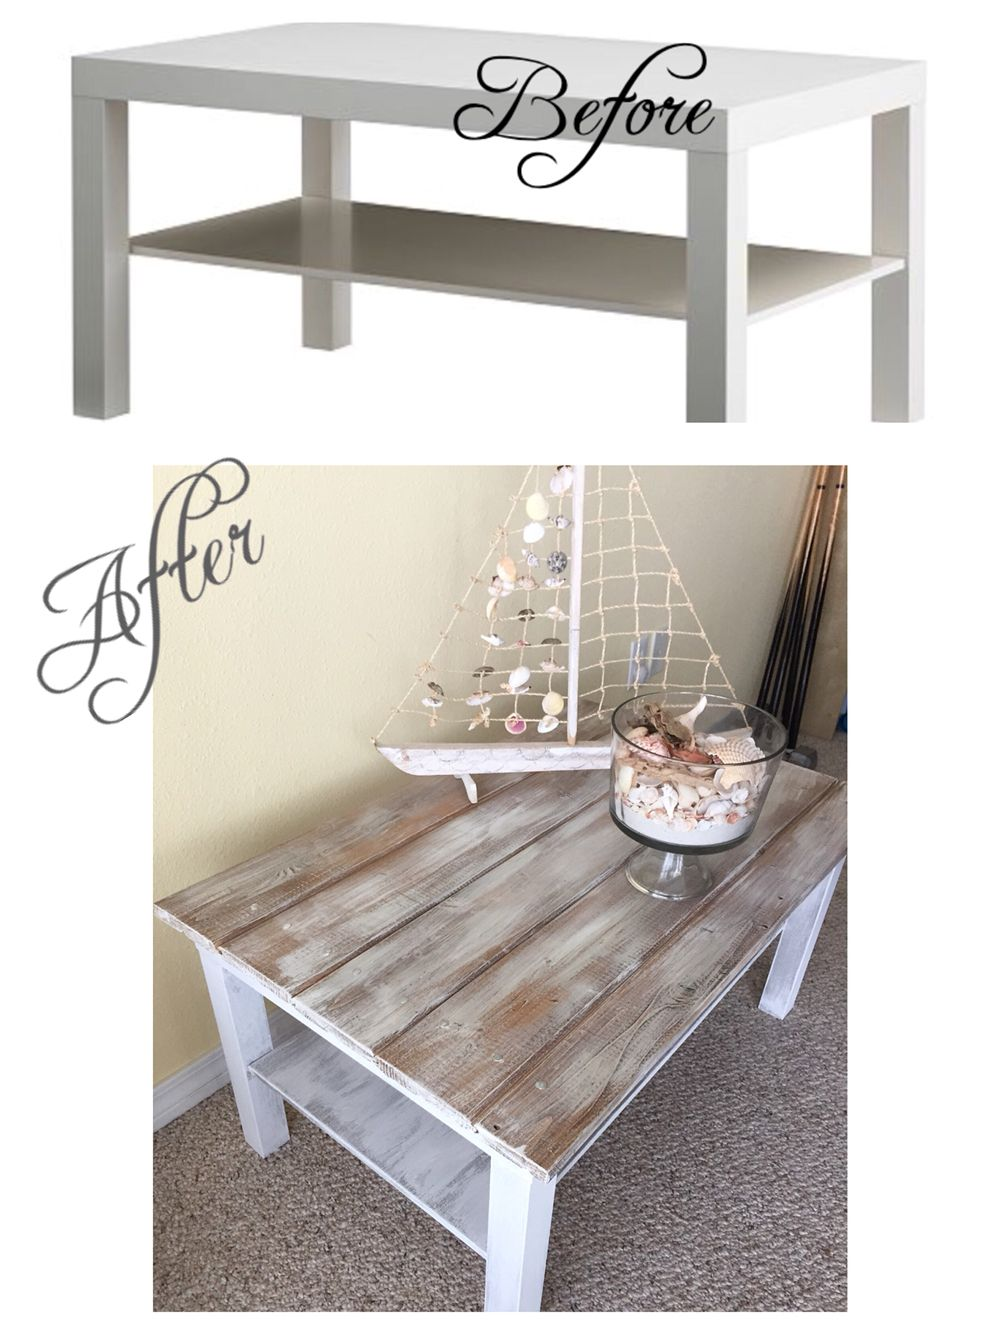 Ikea Coffee Table Hack Chalk Paint French Linen Dry Brush Pure White Dry Brush Wood Planks Pure